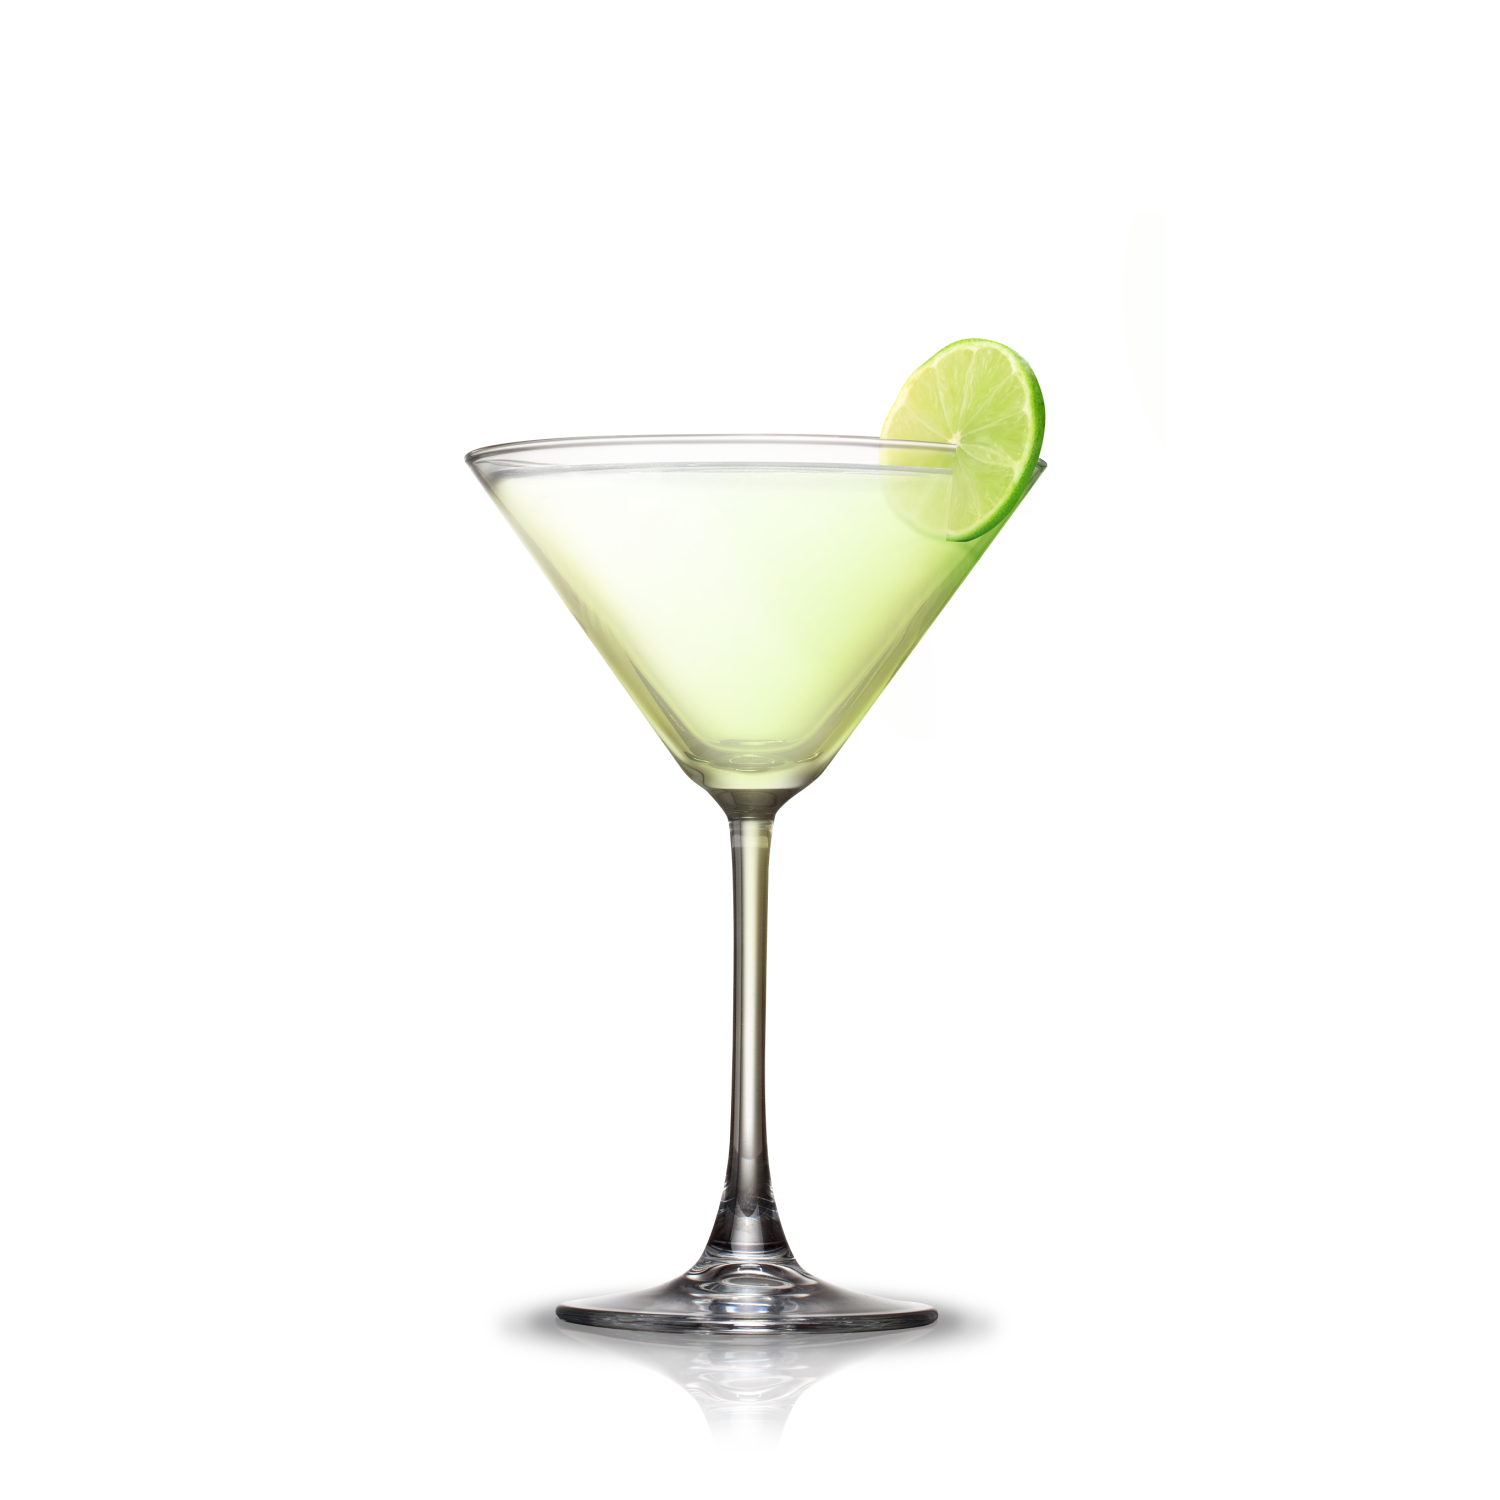 how to hold a cokctail